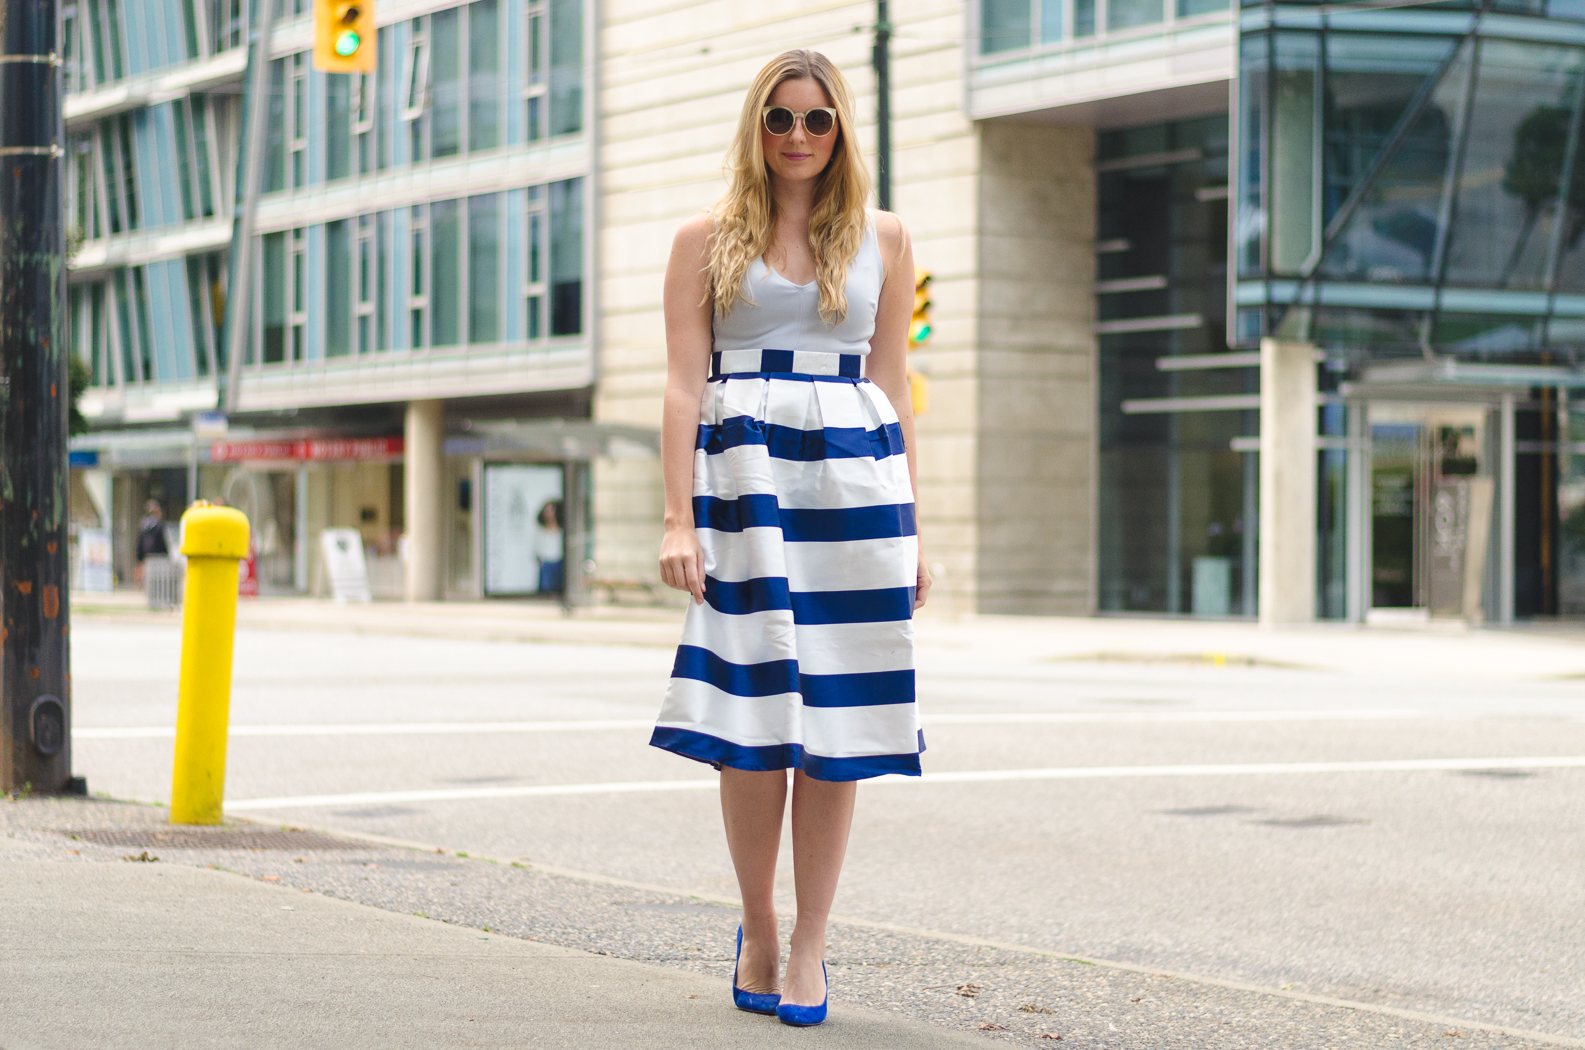 the urban umbrella style blog, vancouver style blog, vancouver fashion blog, vancouver lifestyle blog, vancouver health blog, vancouver fitness blog, vancouver travel blog, canadian faashion blog, canadian style blog, canadian lifestyle blog, canadian health blog, canadian fitness blog, canadian travel blog, bree aylwin, chicwish a-line striped midi skirt in navy, how to style a striped skirt, how to style a midi skirt, what to wear with a midi skirt, polette gold sunglasses, how to style stripes, best midi skirt outfit ideas, midi skirt outfit, best lifestyle blogs, best fitness blogs, best health blogs, best travel blogs, top fashion blogs, top style blogs, top lifestyle blogs, top fitness blogs, top health blogs, top travel blogs